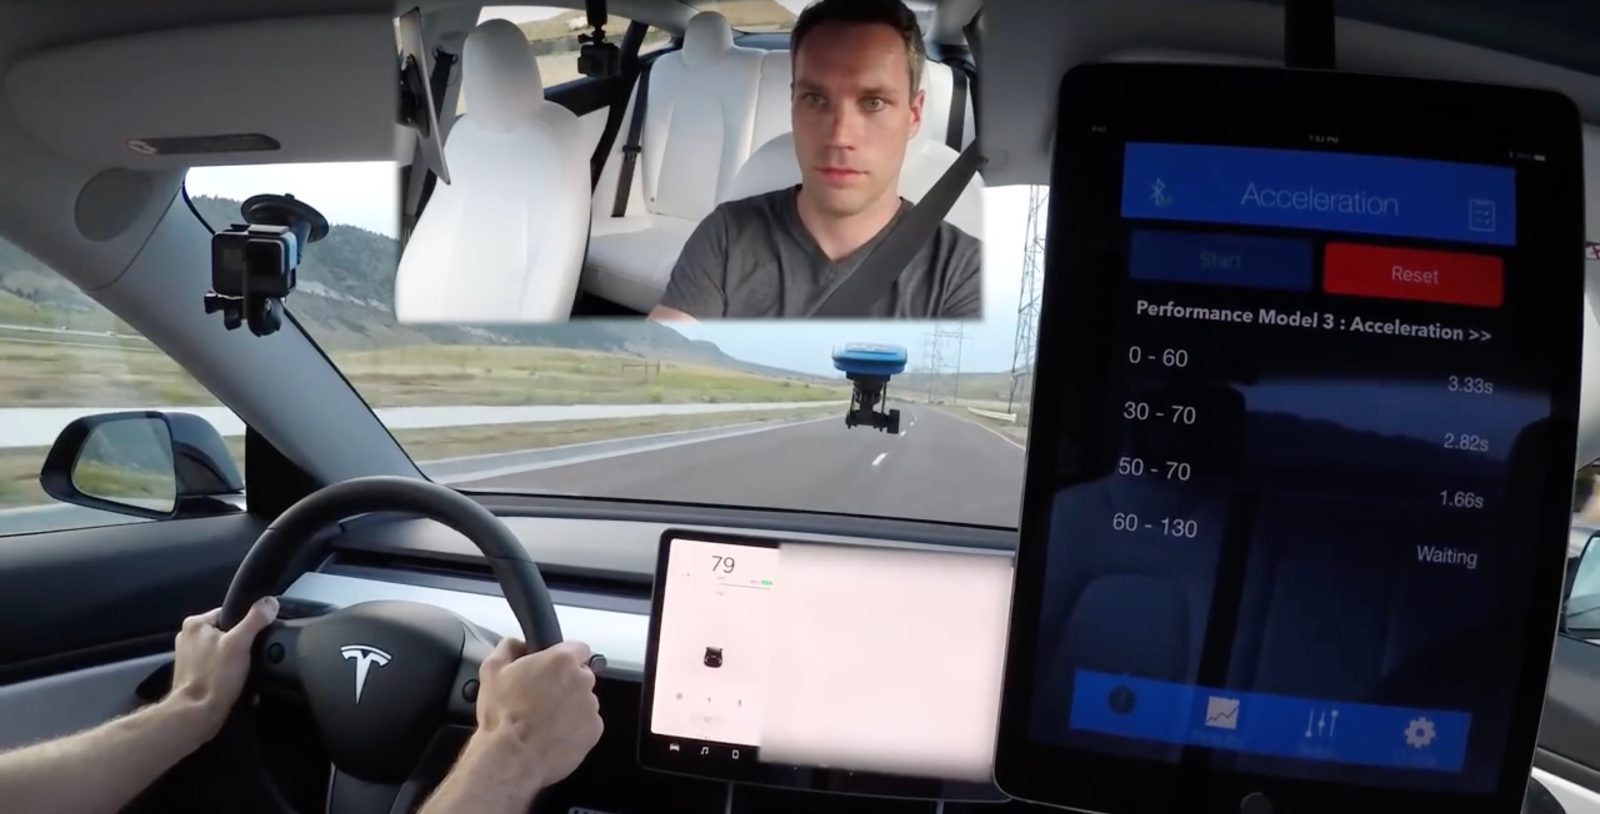 Tesla Model 3 Performance Is Even Faster Than Aned 0 60 Mph In 3s Quarter Mile 11 8s